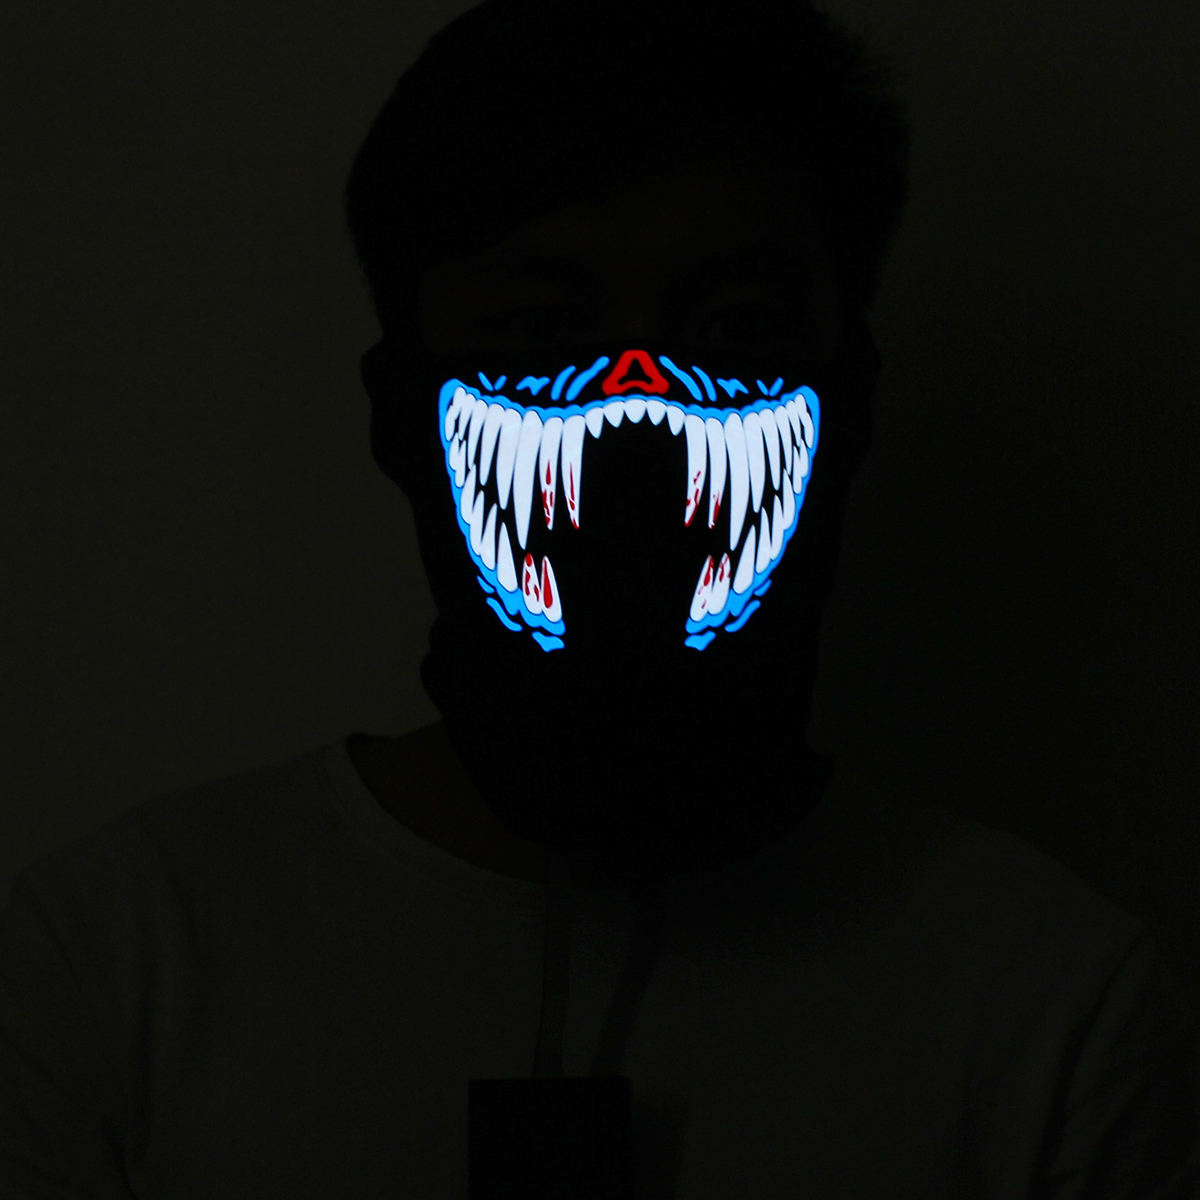 LED Rave Party Face Mask Equalizer Flashing by Music Luminous Cosplay Dance